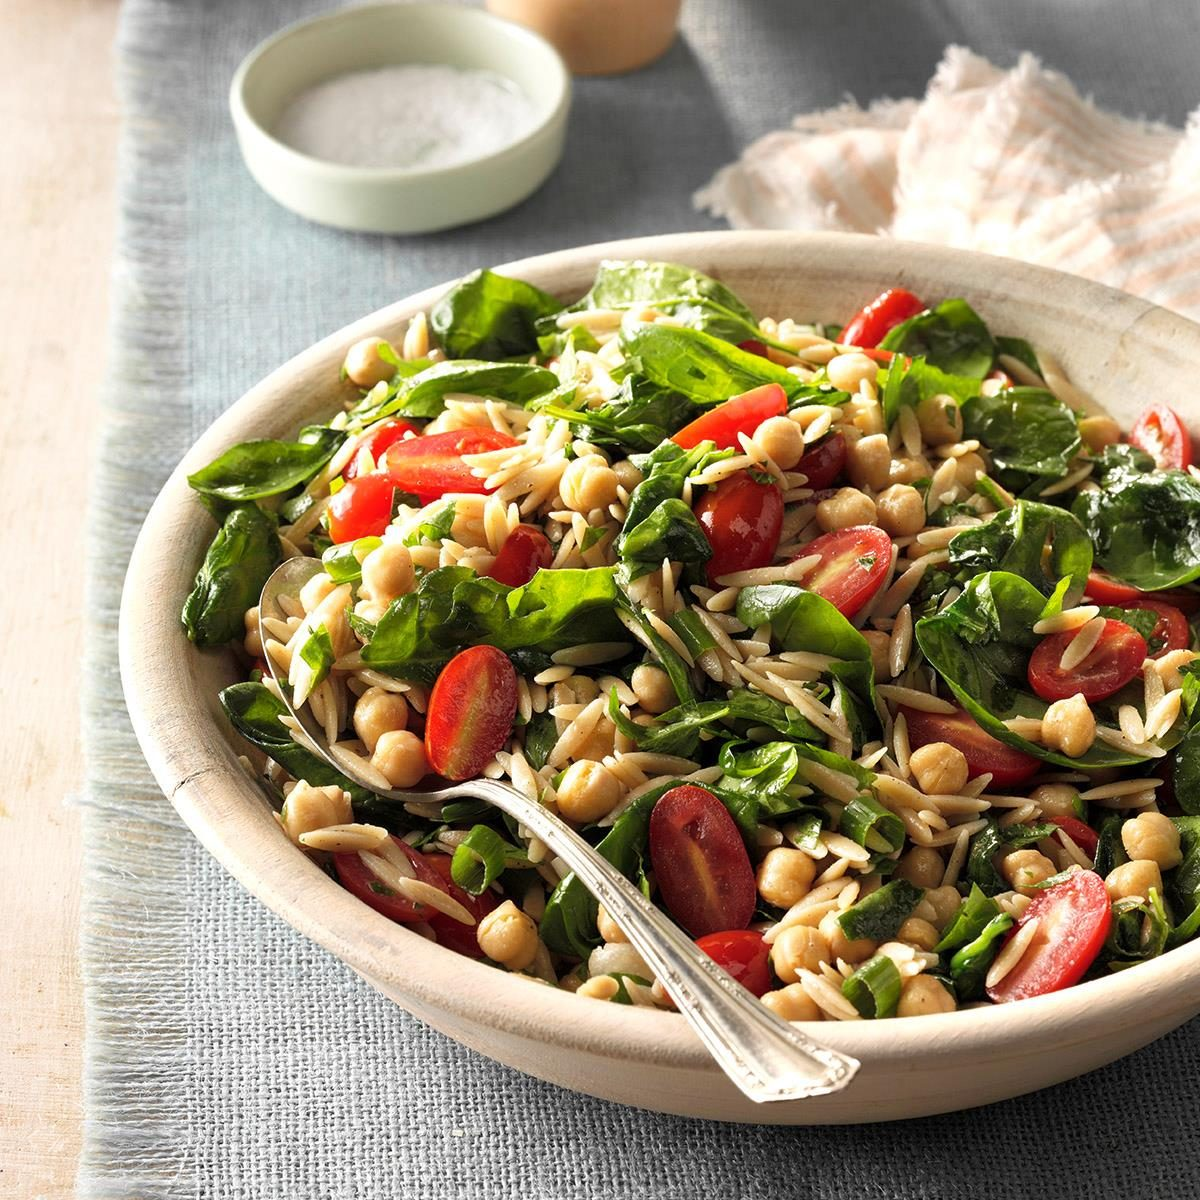 50 Ways to Get More Leafy Greens in Your Life